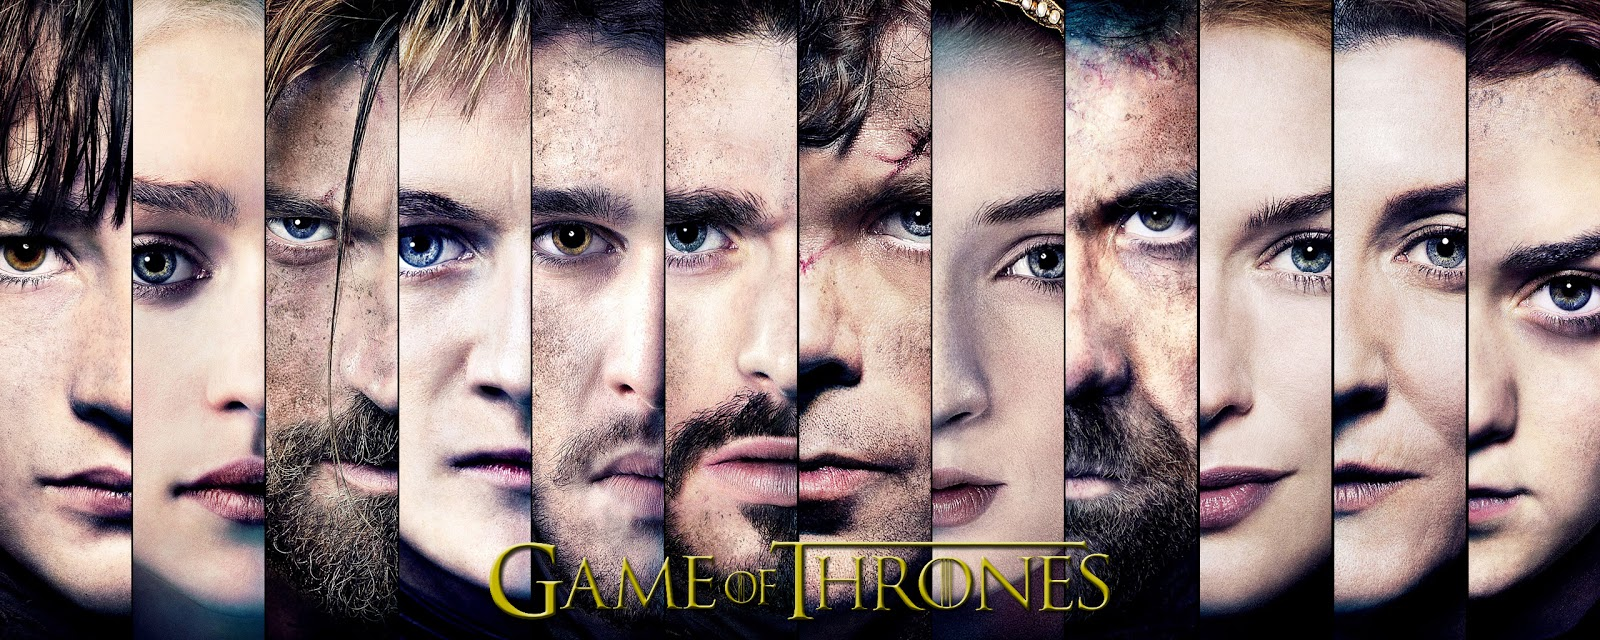 Game of Thrones 5: video dal set e nuovi spoiler